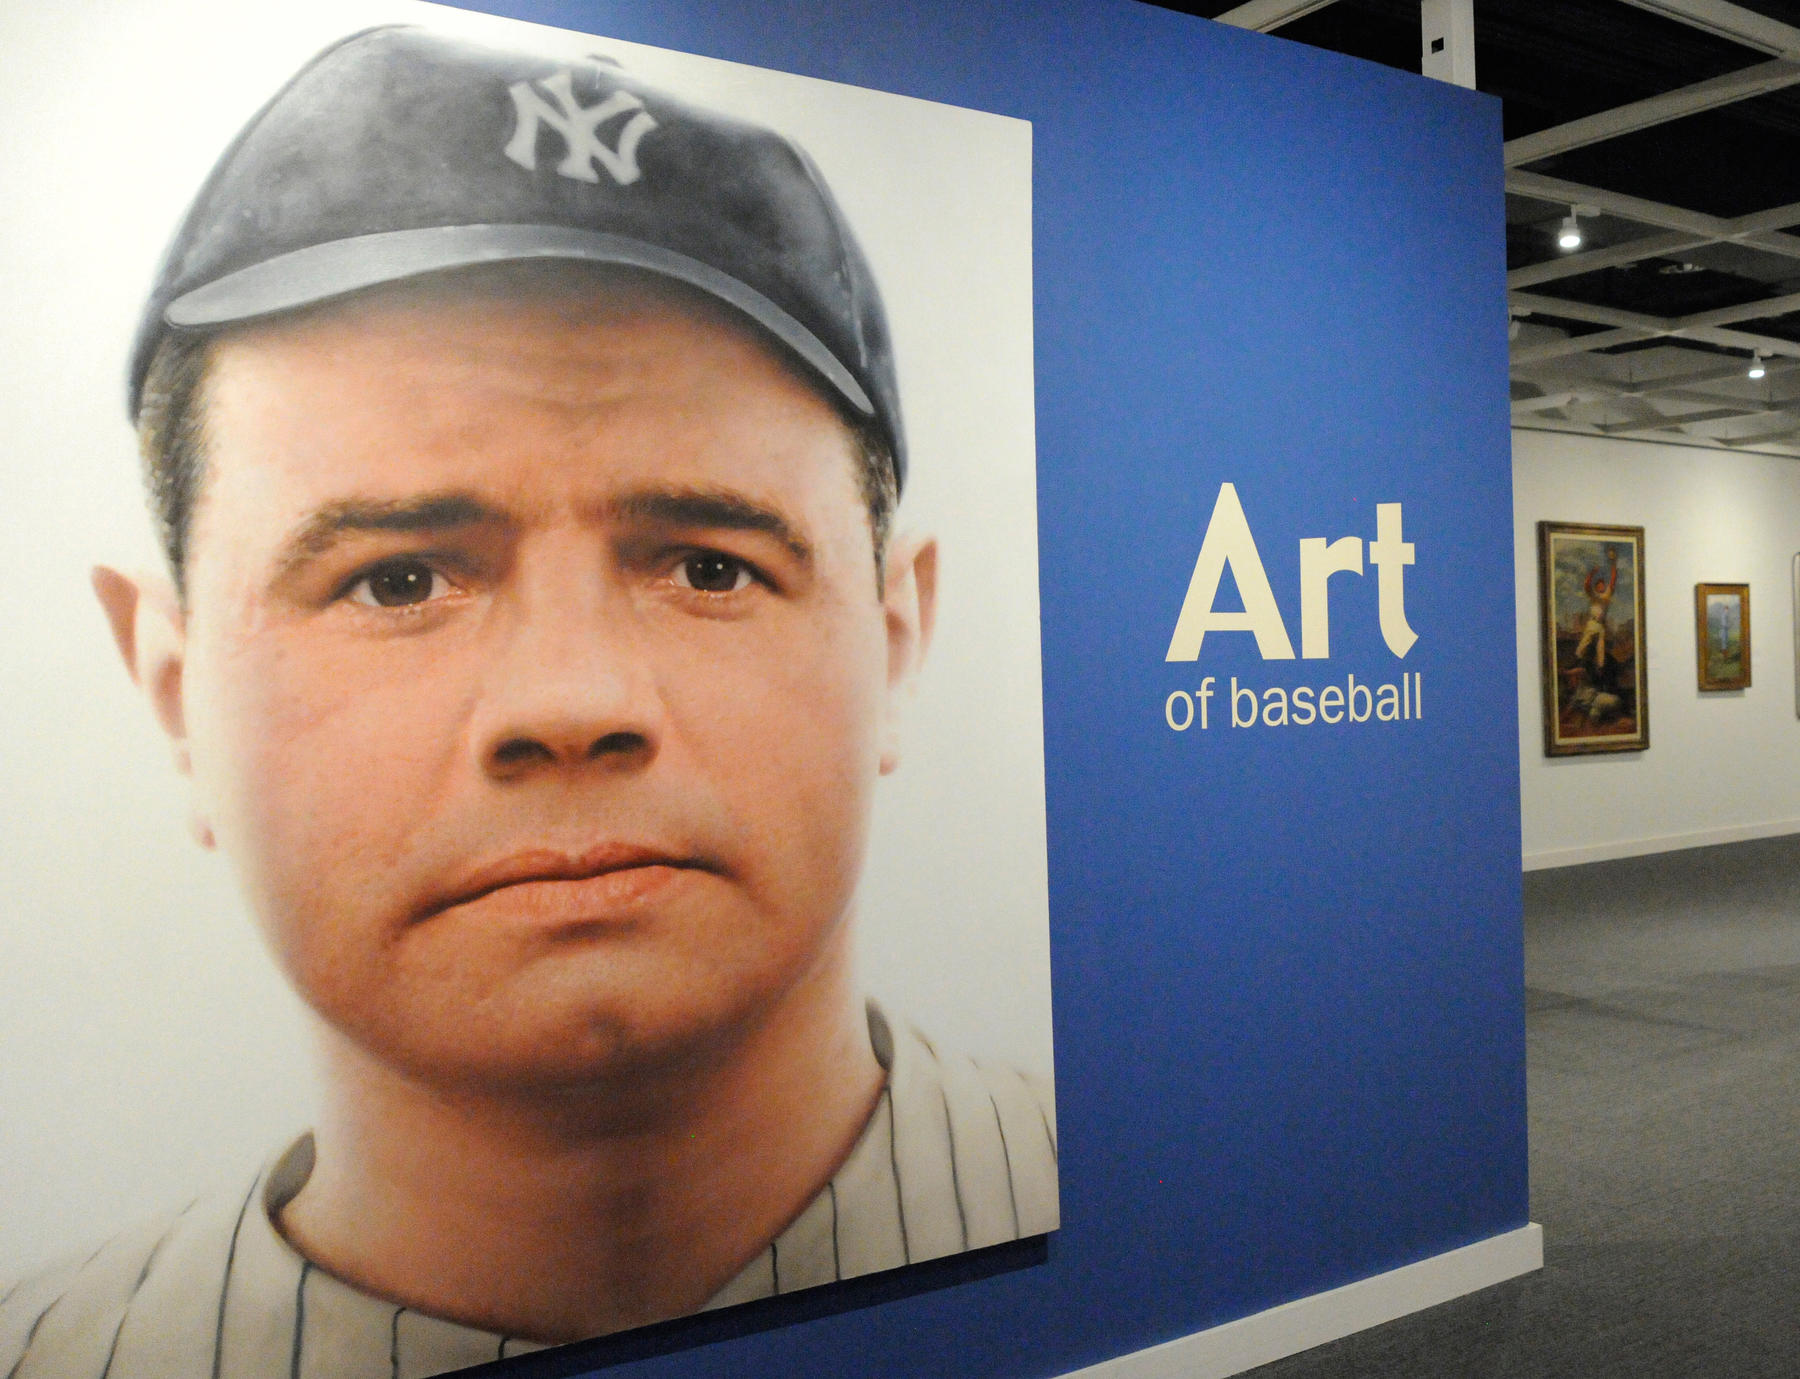 This painting of Babe Ruth by the artist Rossin hangs in the Museum's Art Gallery, welcoming visitors to a world of baseball and artistry. (Milo Stewart, Jr. / National Baseball Hall of Fame)